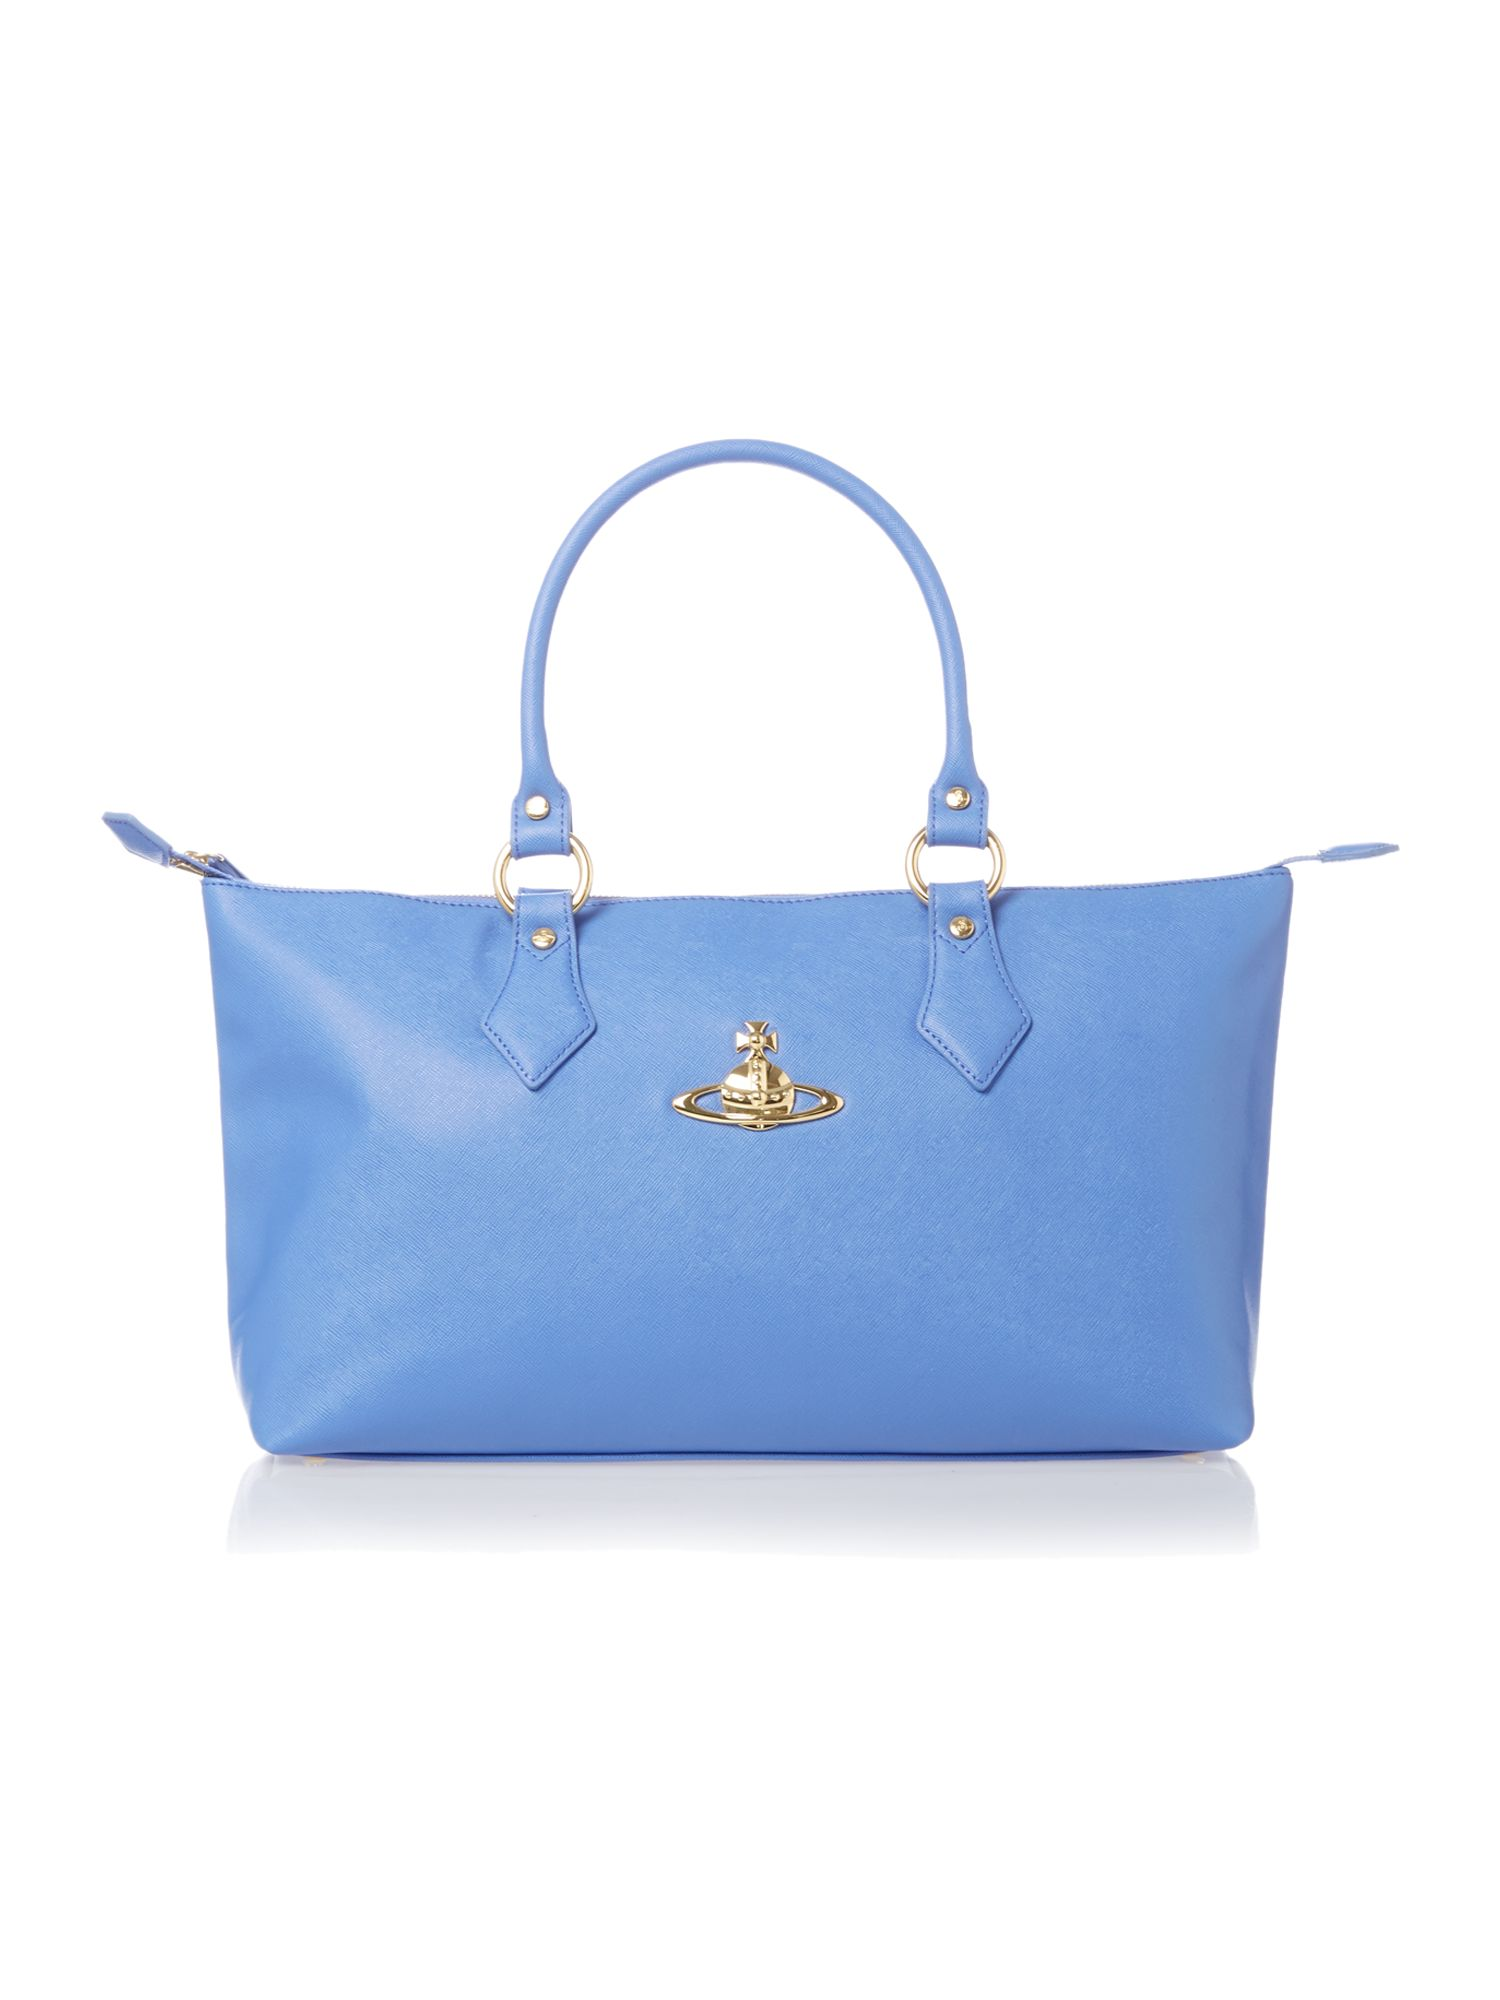 Divina medium blue tote bag